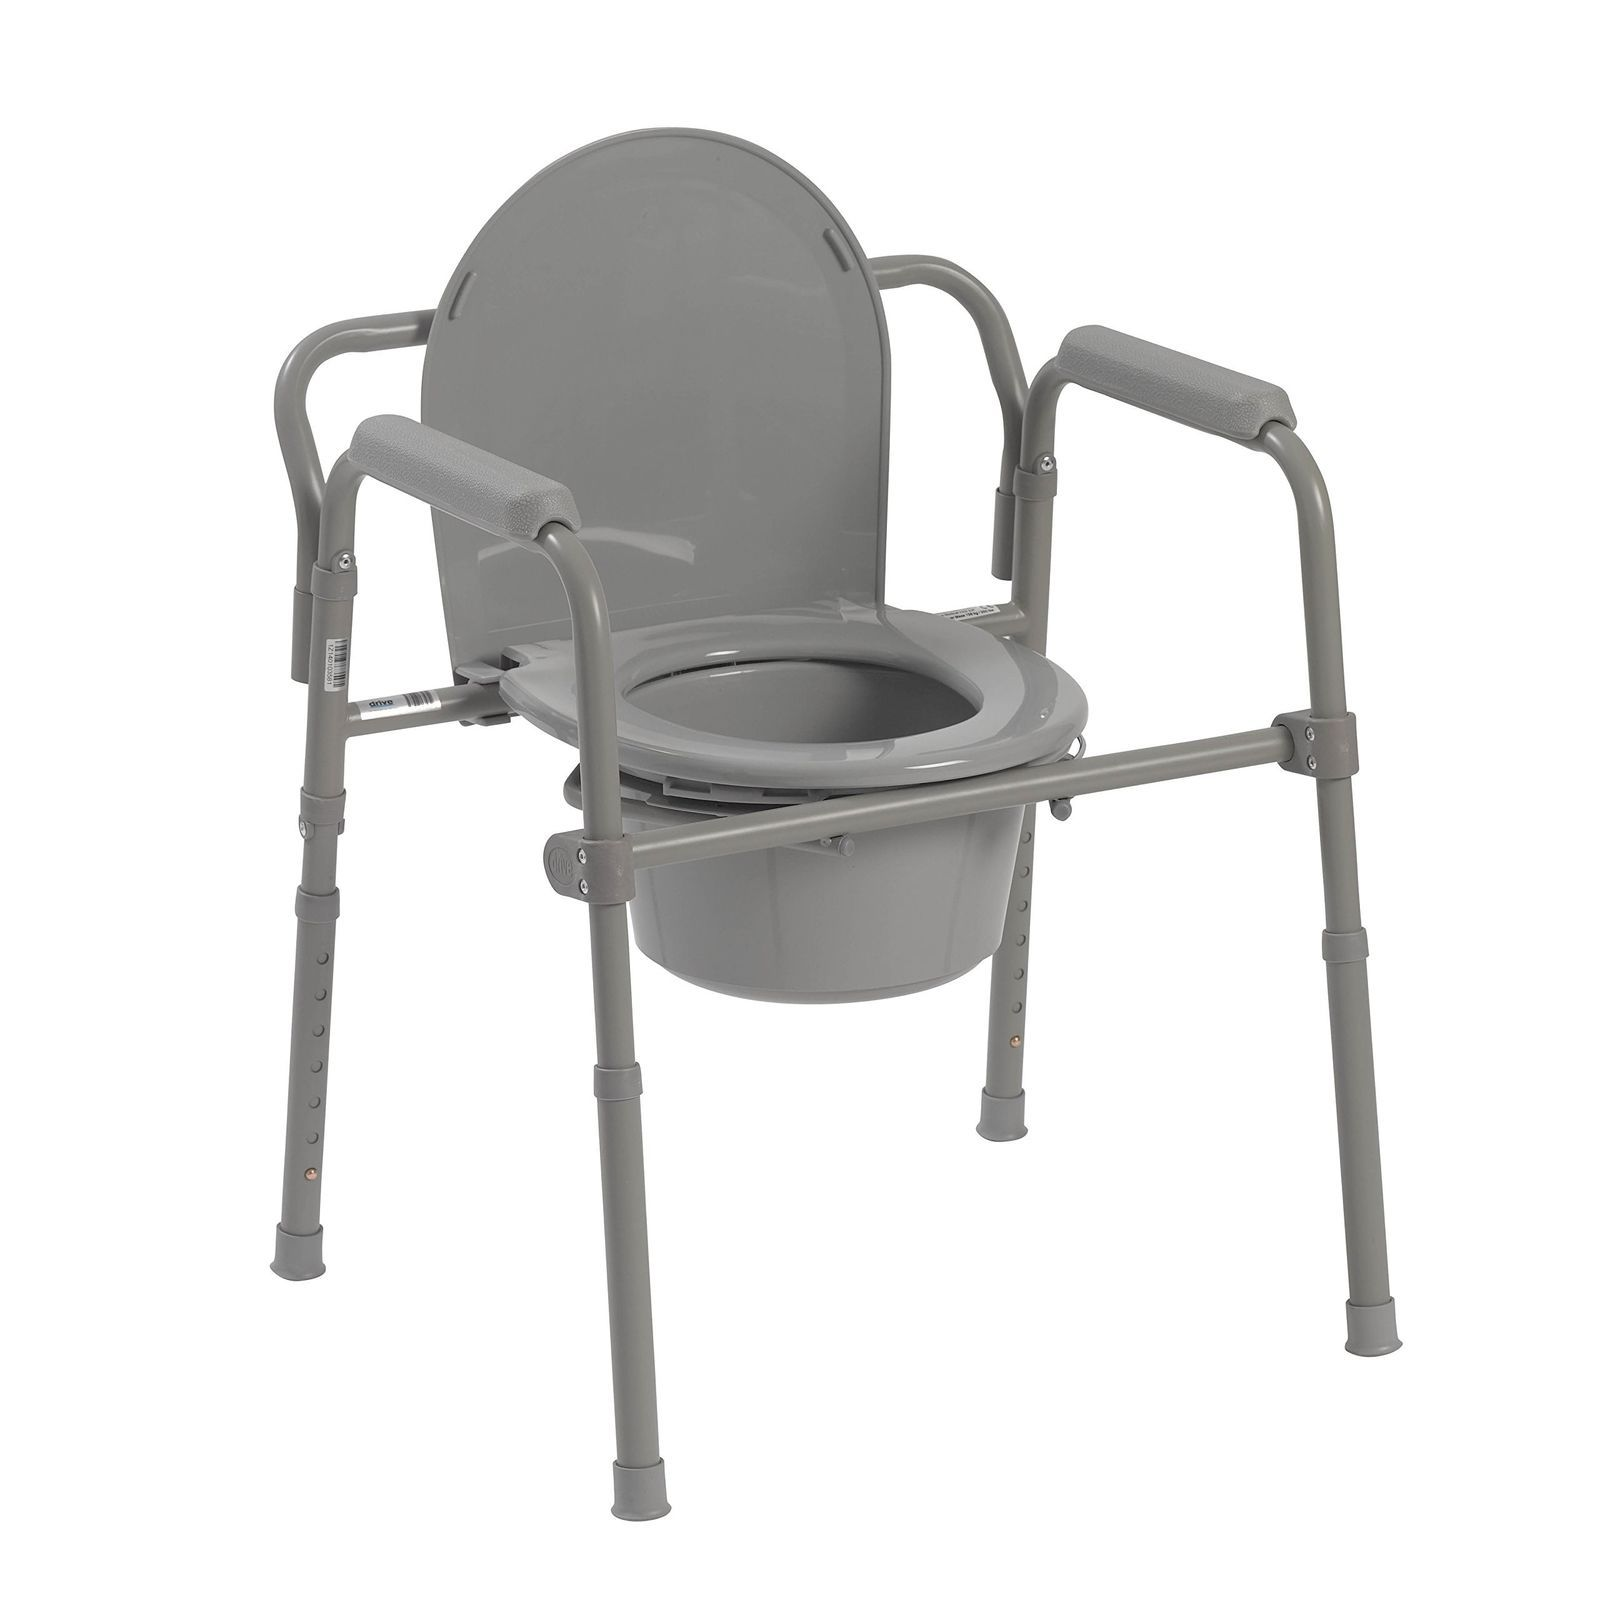 Easily Opens And Folds Flat For Storage And Transportation Durable Plastic Snap On Seat And Lid Installs Without Pushing Bedside Commode Commode Chair Commode